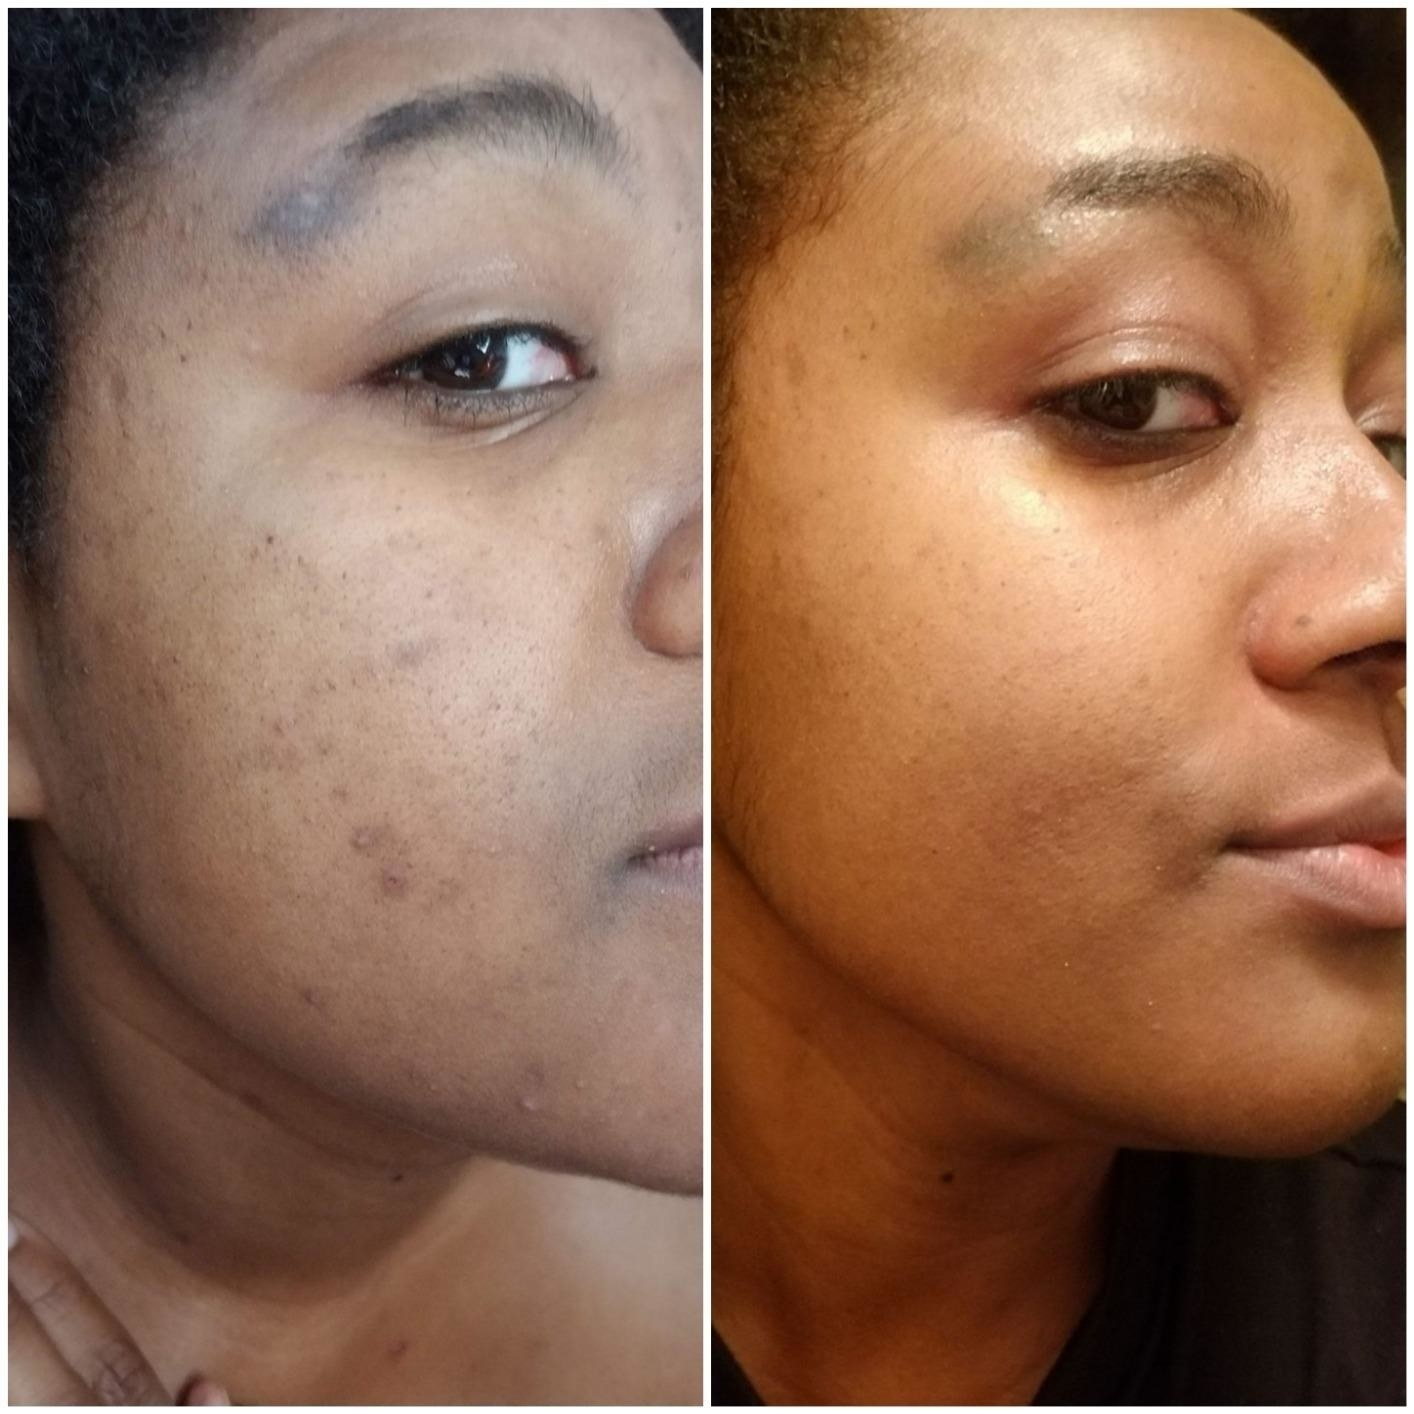 on the left, a person with blemishes and on the right the same person with fewer blemishes